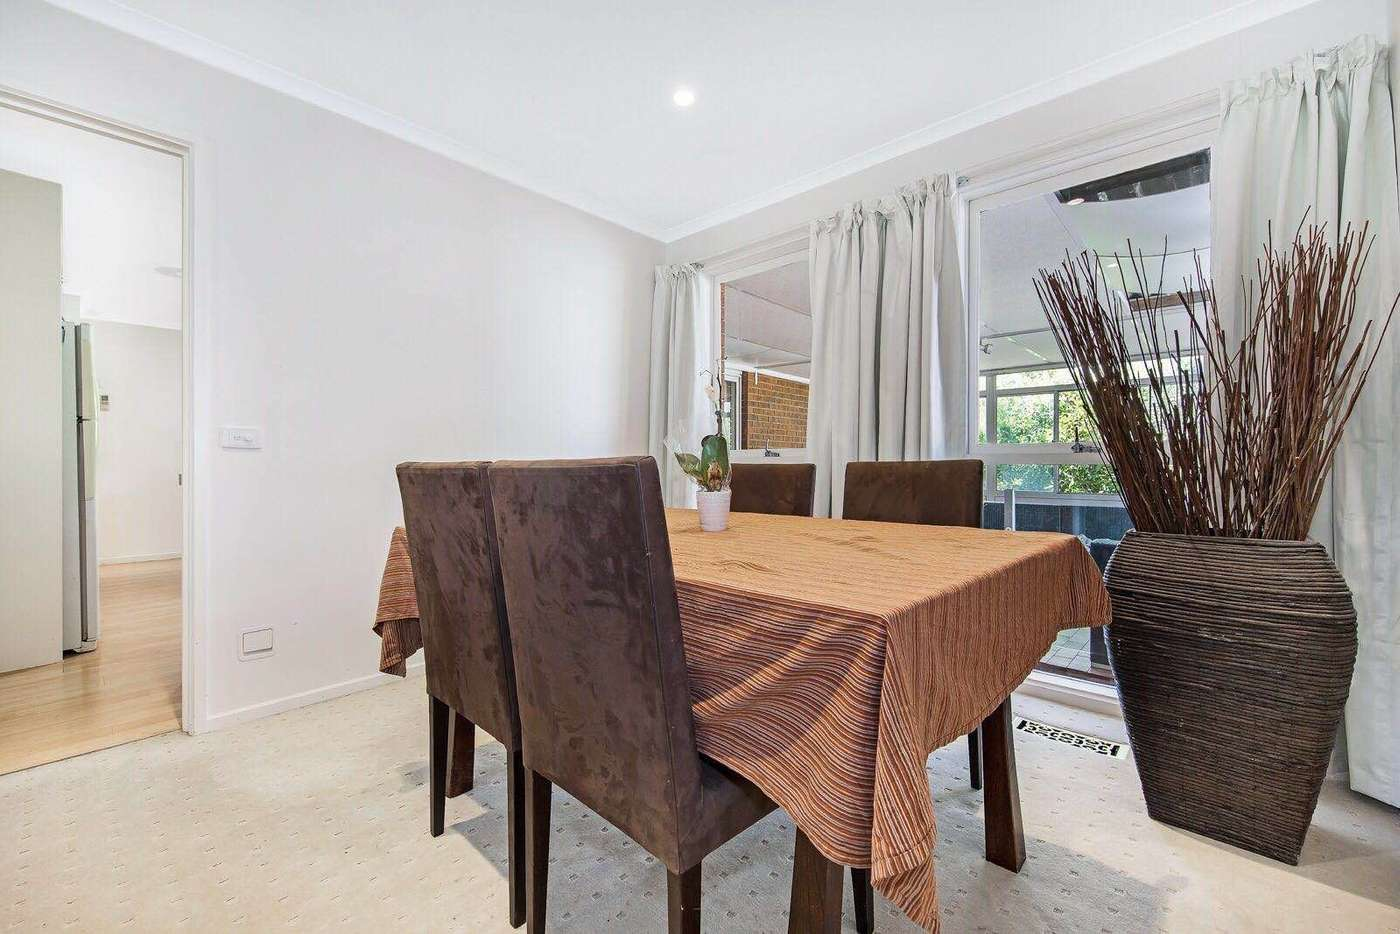 Sixth view of Homely house listing, 49 Barlyn Road, Mount Waverley VIC 3149